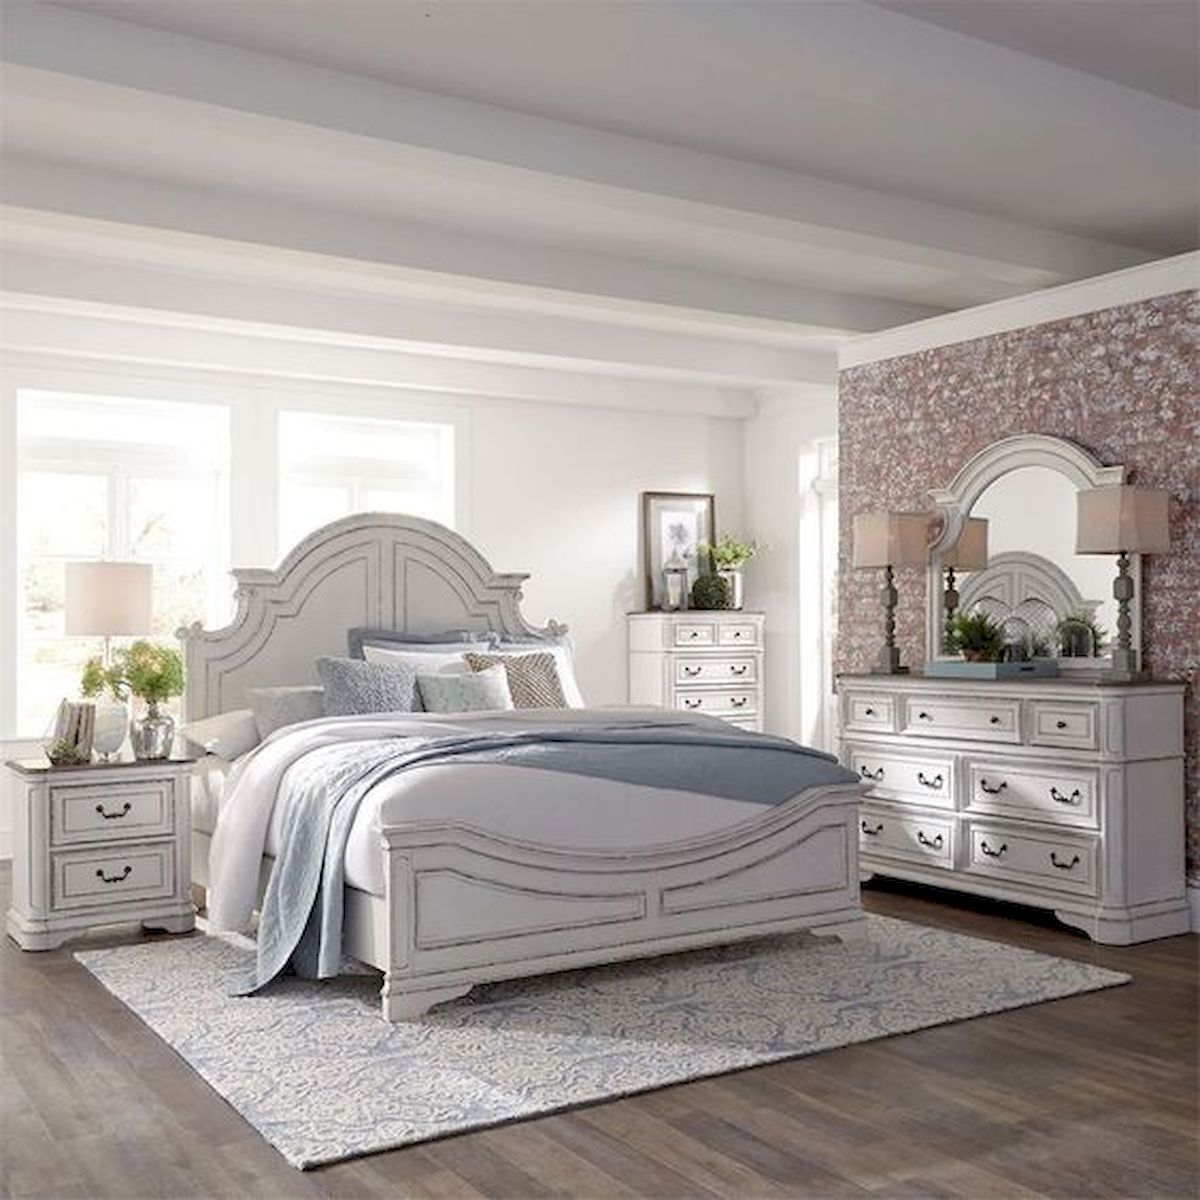 44 Awesome White Master Bedroom Design and Decor Ideas For Any Home Design (11)